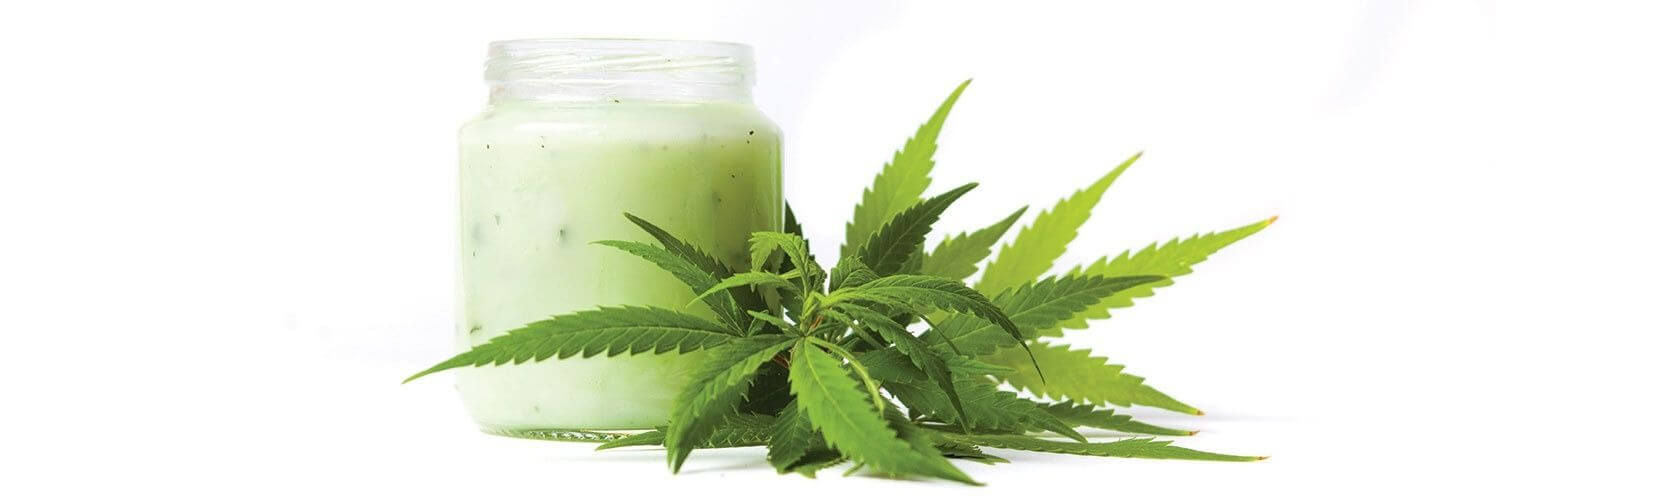 cannabis skin cream